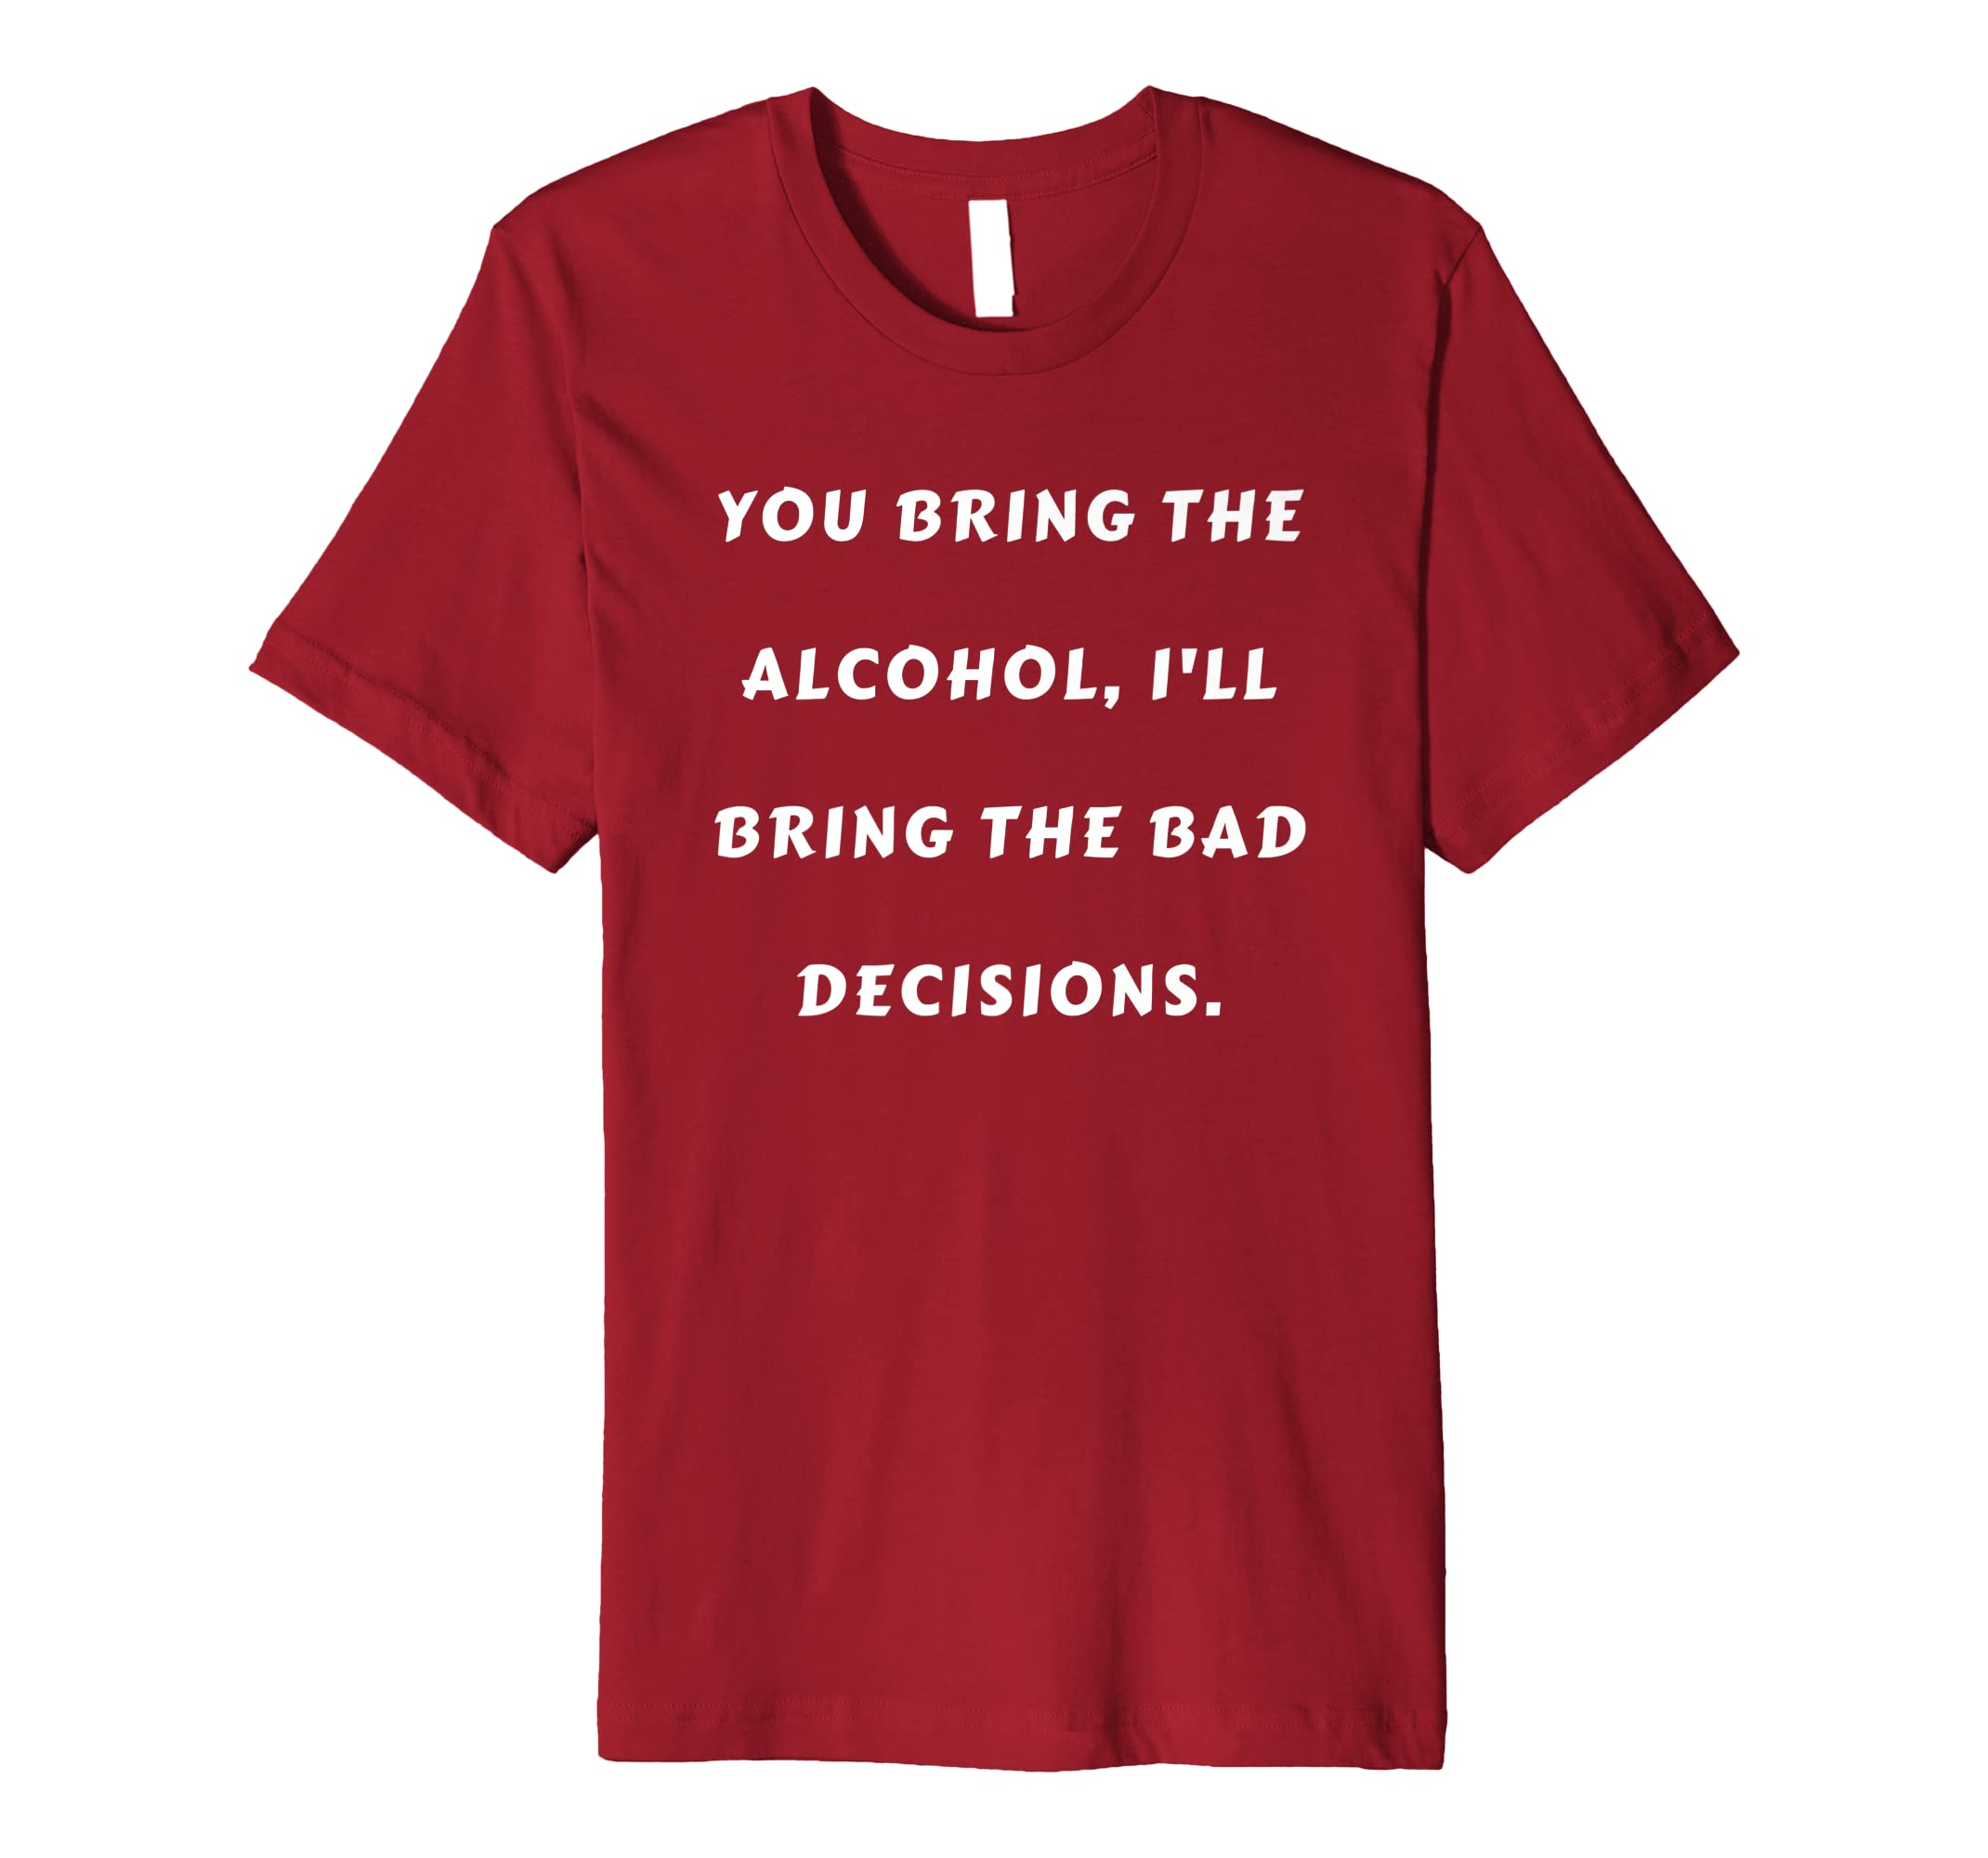 49c974aac Amazon.com: YOU BRING THE ALCOHOL, I'LL BRING THE BAD DECISIONS t shirt:  Clothing